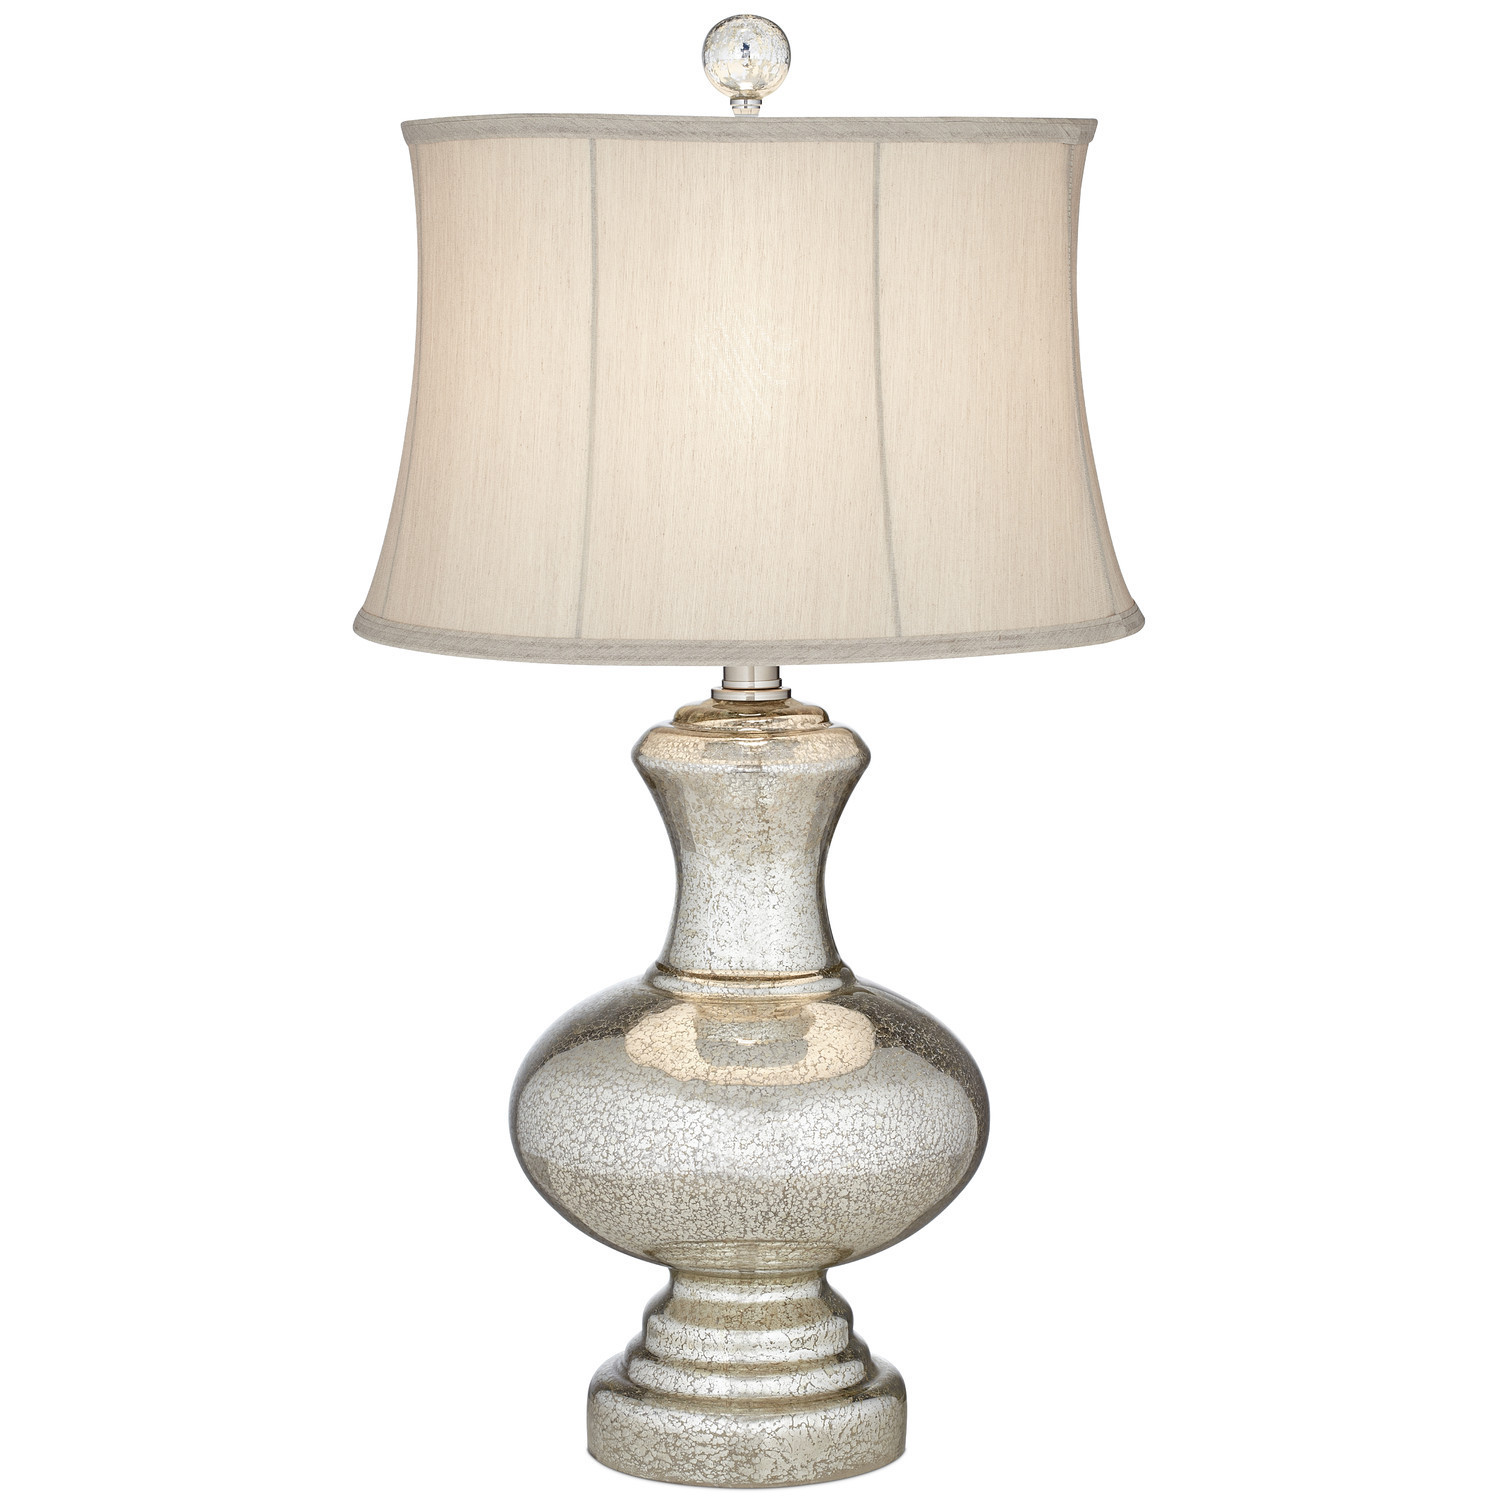 Silver Mercury Table Lamp with Drum Shade